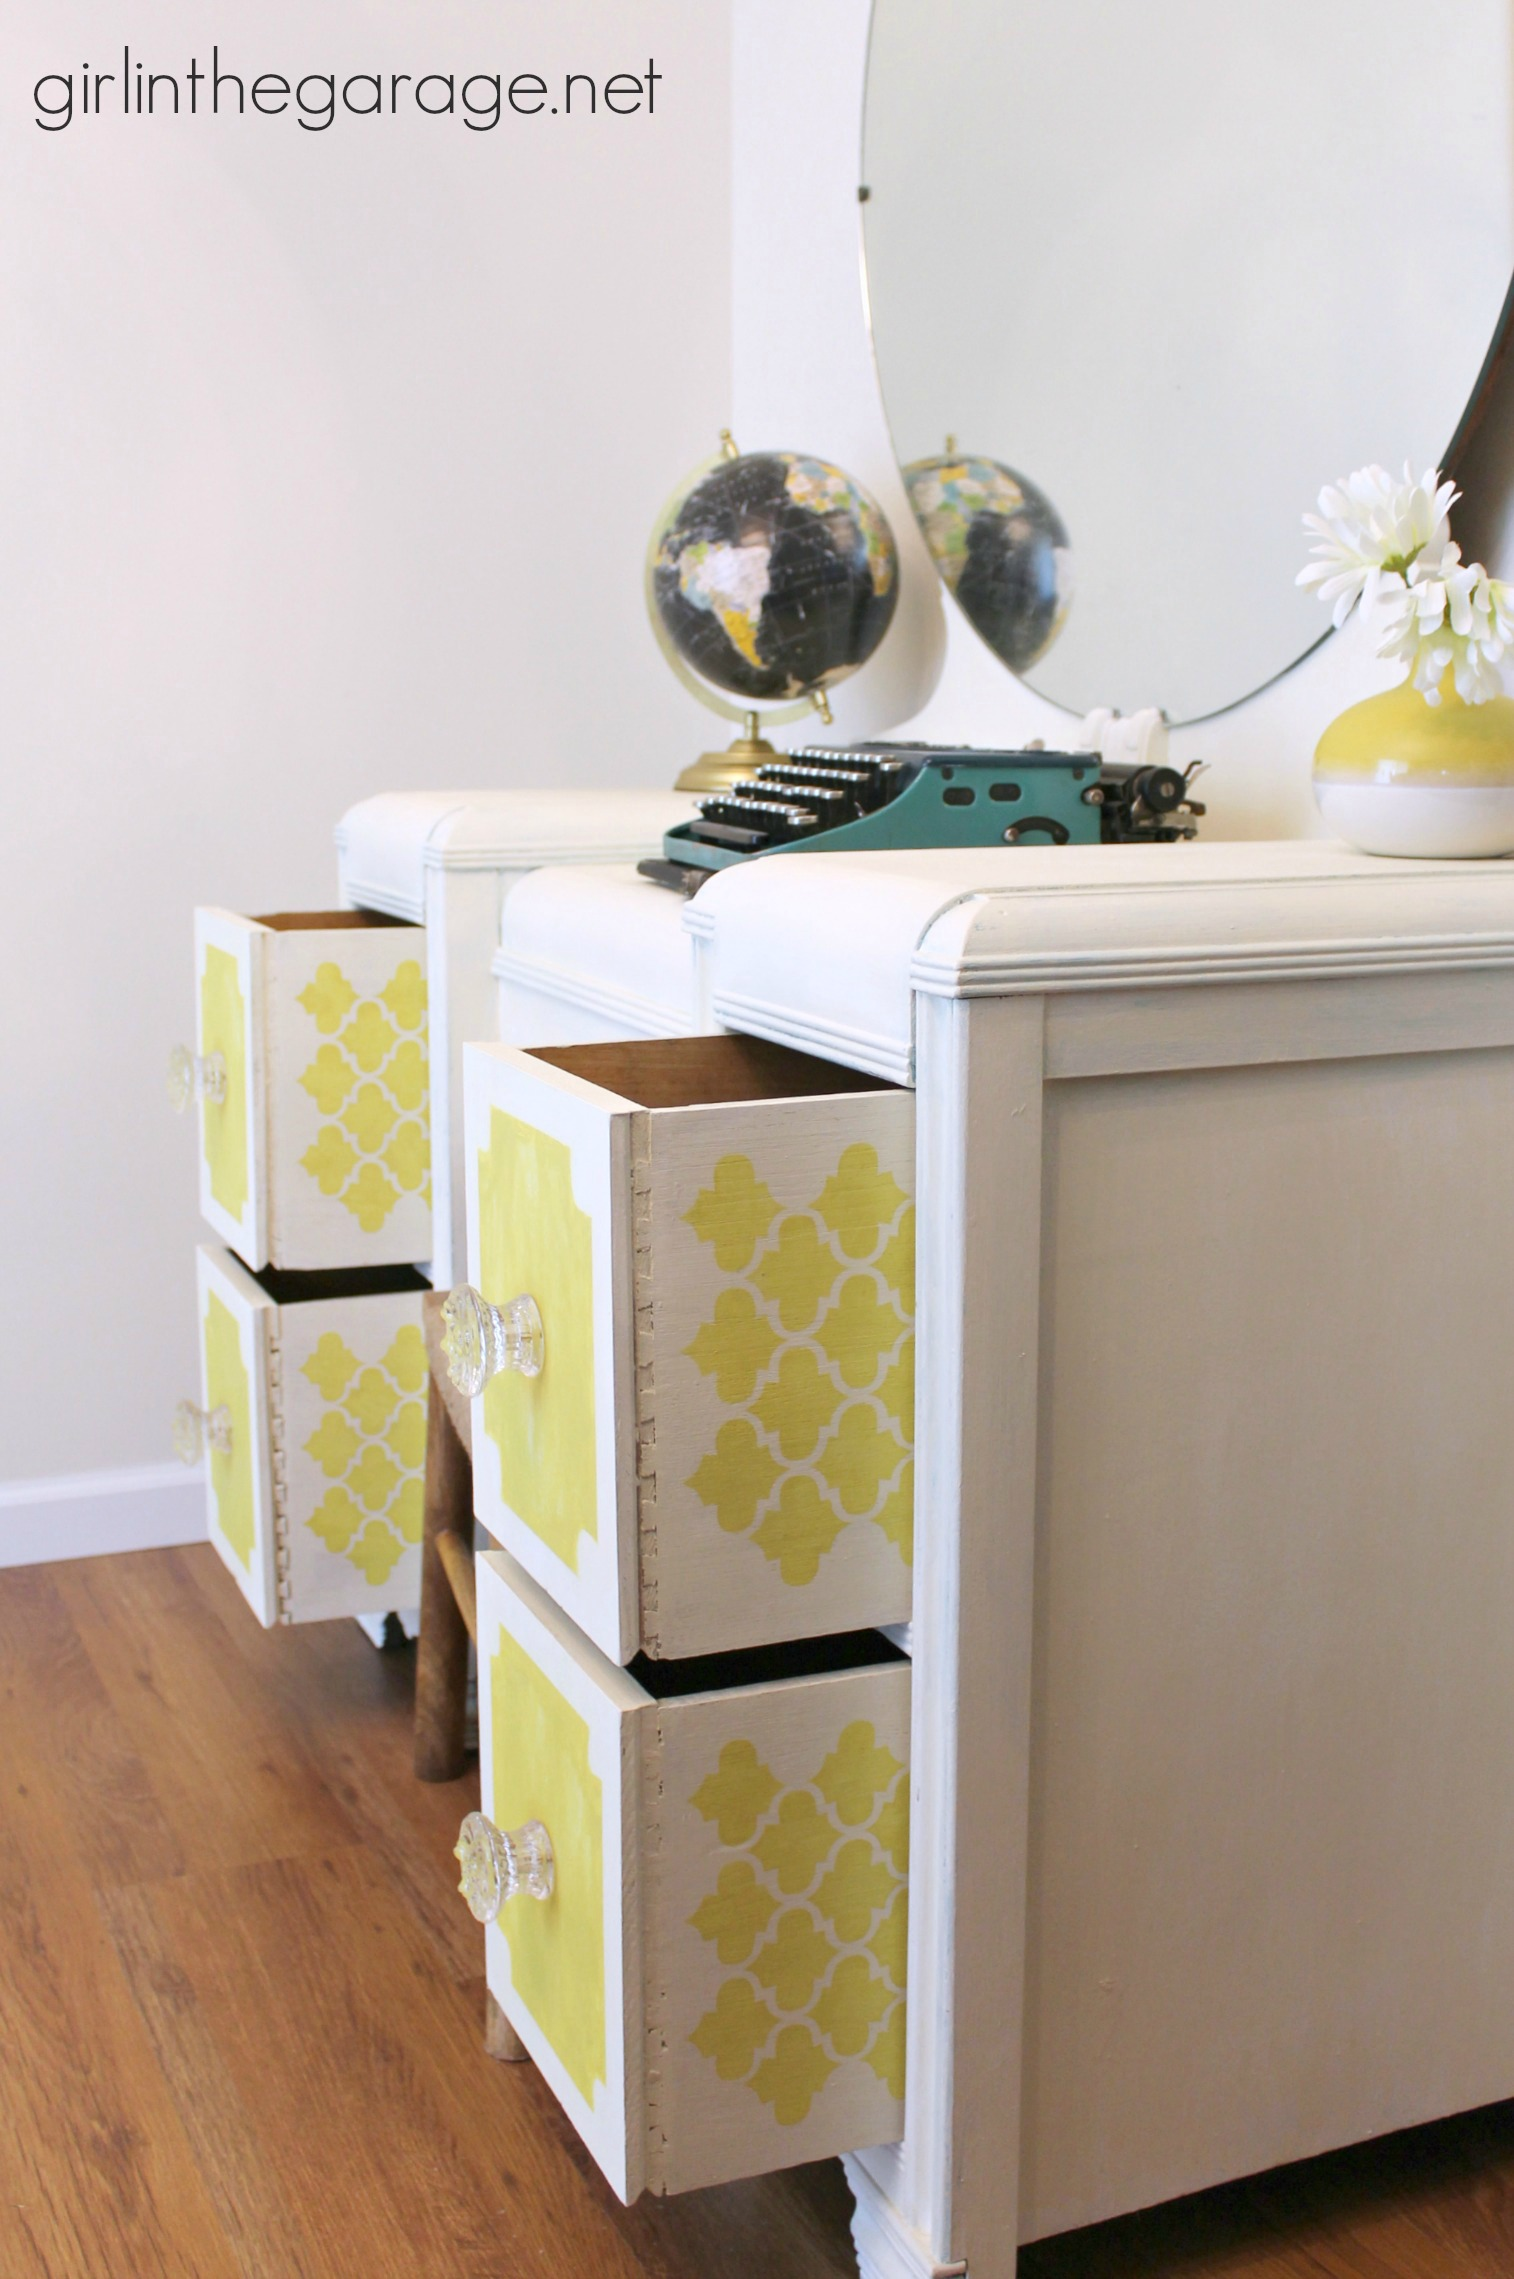 12 Yard Sale Furniture Makeovers by Girl in the Garage